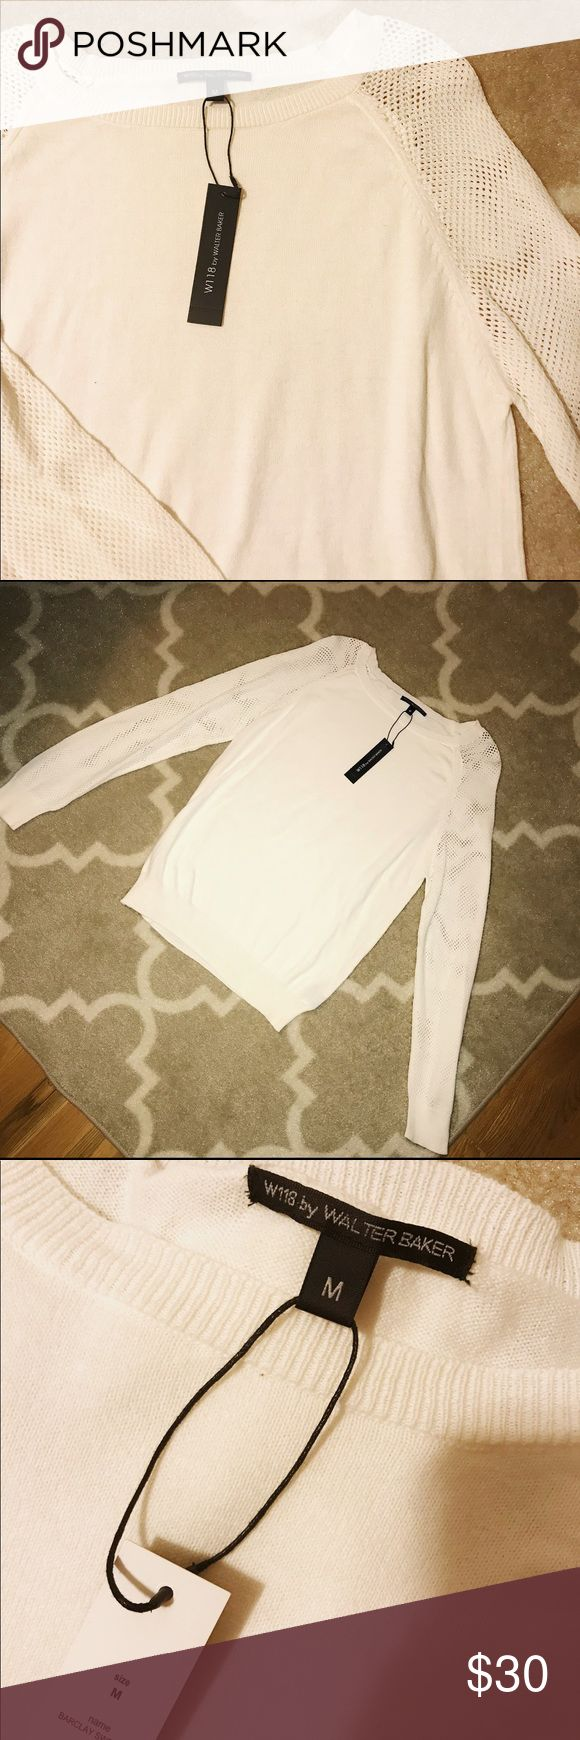 Walter Baker Cream/White Sweater Walter Baker cream colored sweater with mesh like sleeves and a thin soft material ❤️ Walter Baker Sweaters Crew & Scoop Necks